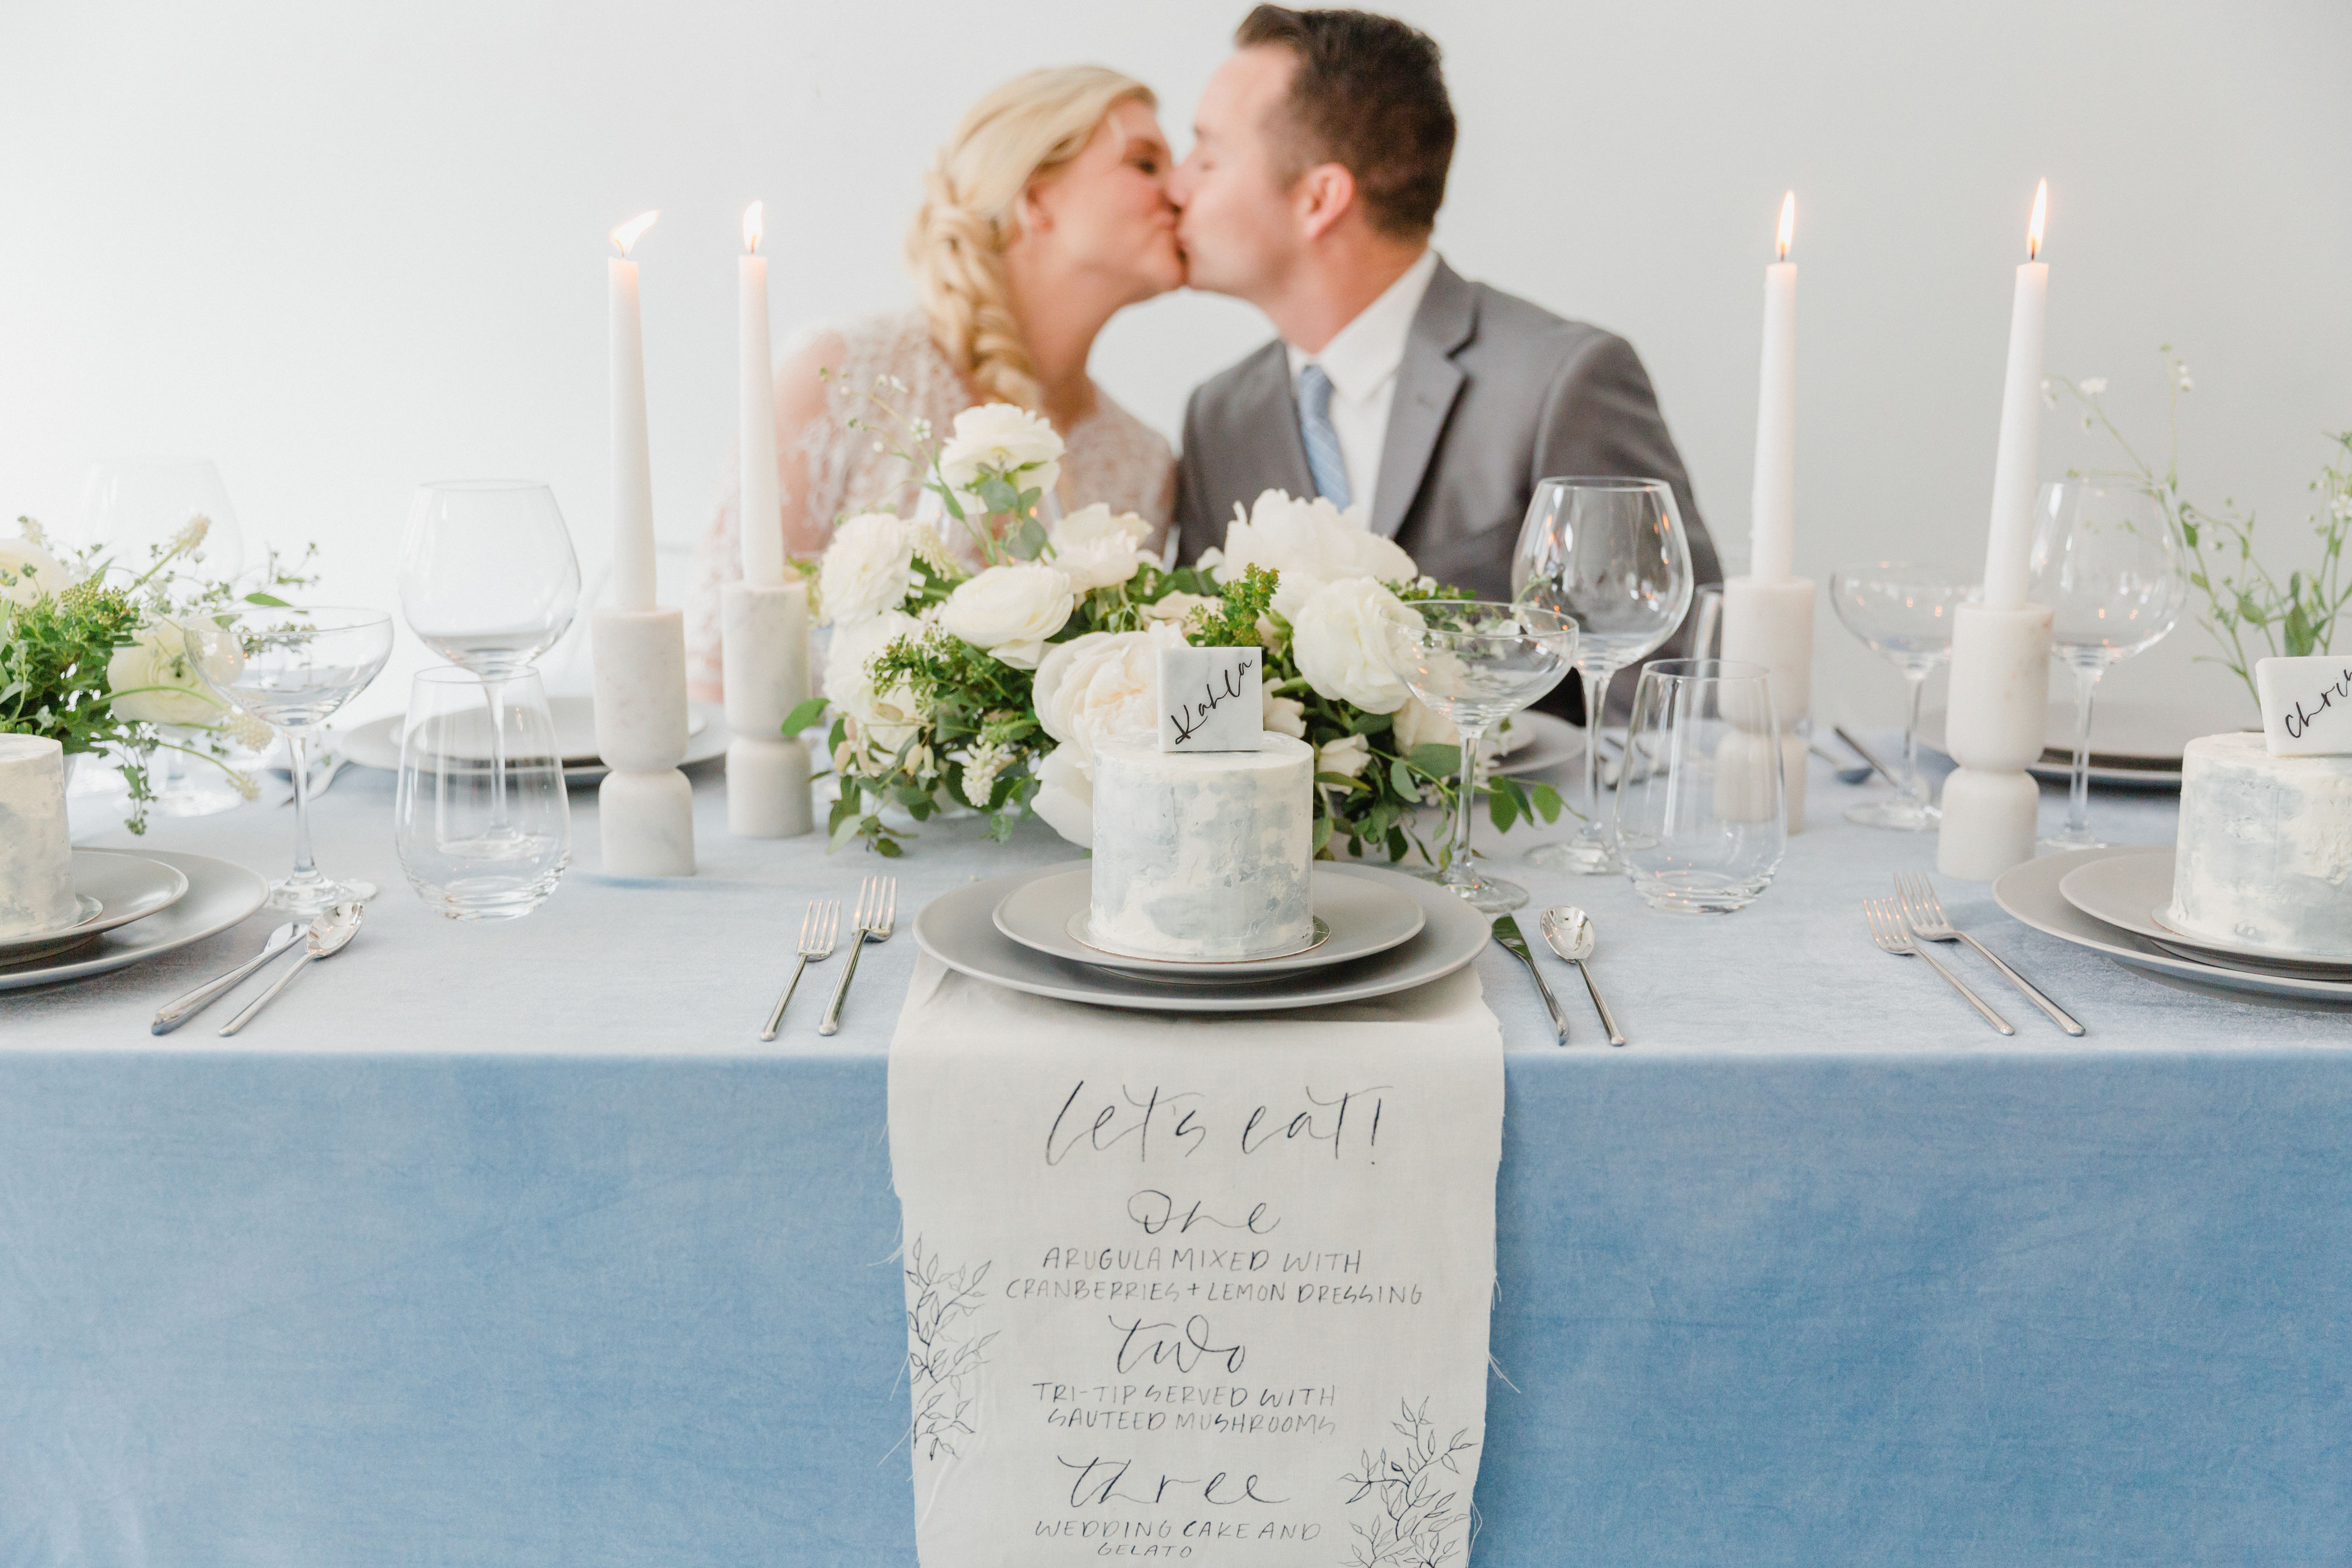 A styled shoot featuring classic blue linens and desserts. Pantone Color of the Year 2020.